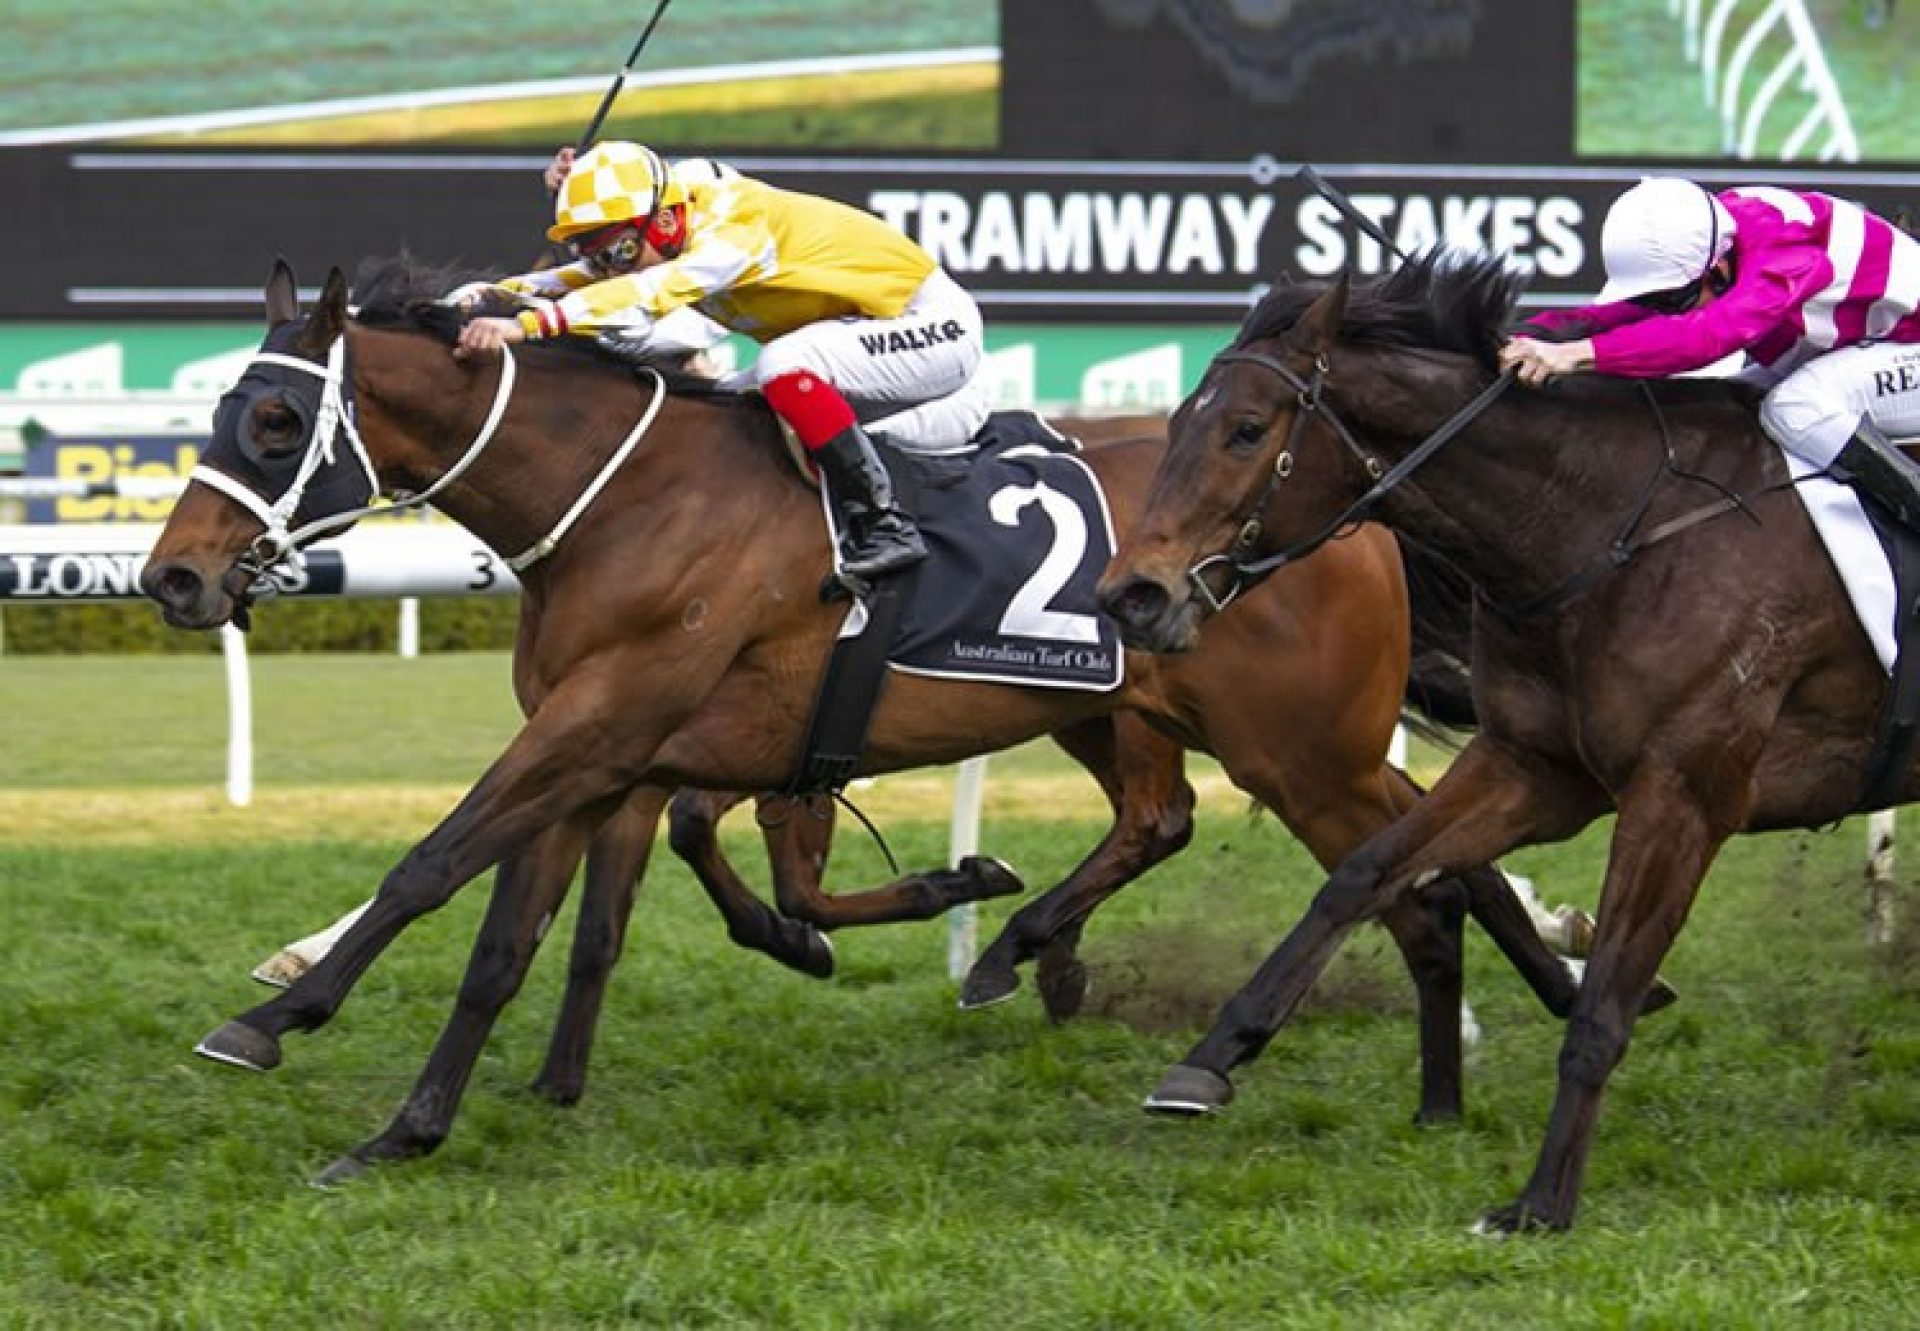 Comin Through (Fastnet Rock) winning the G2 ATC Tramway Stakes at Randwick